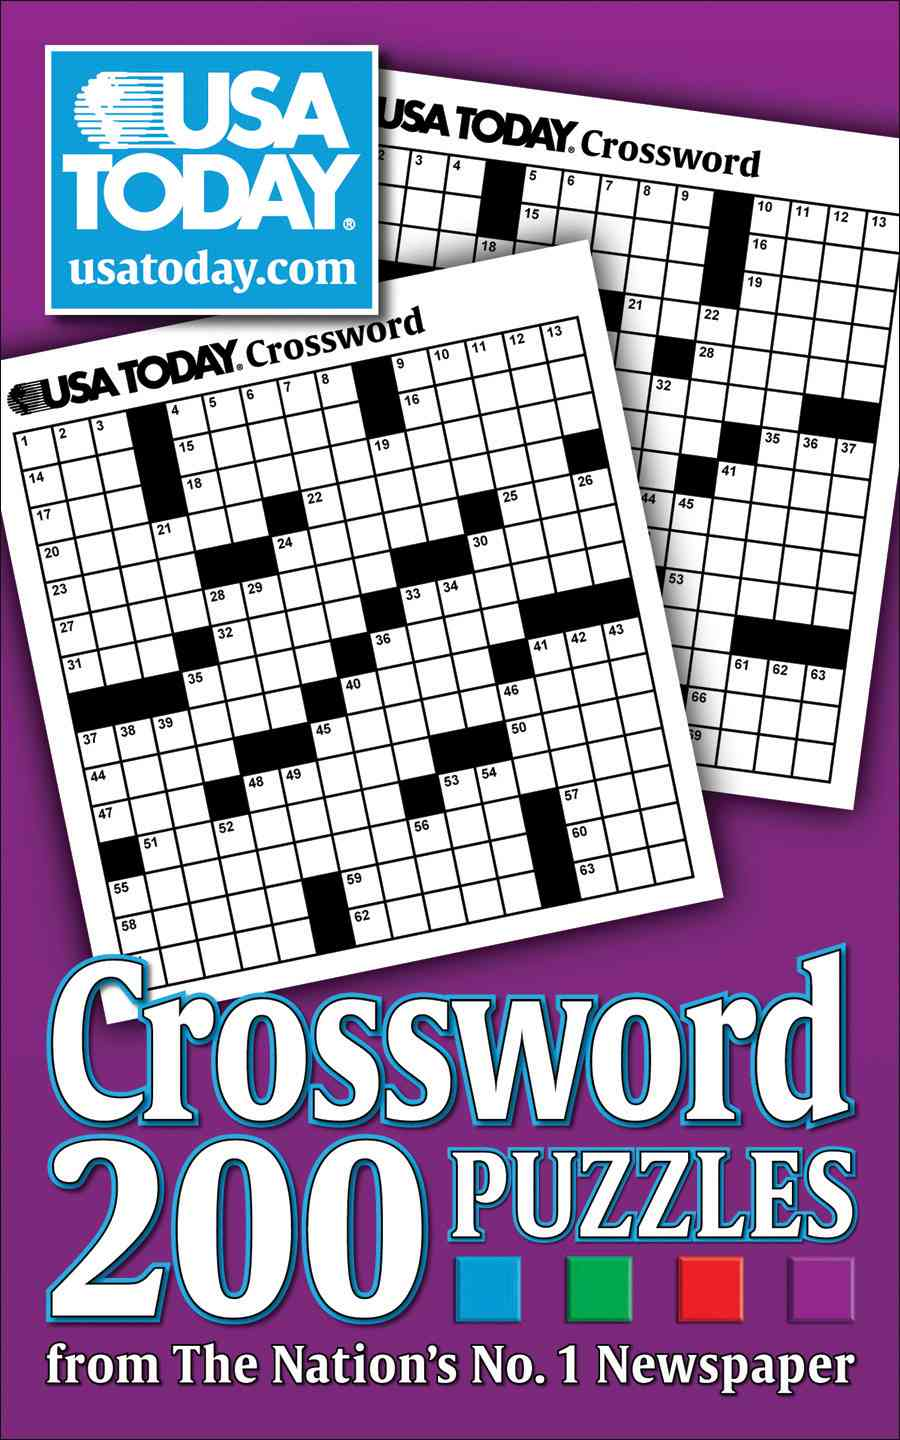 USA Today Crossword: 200 Puzzles from the Nation's No. 1 Newspaper (Paperback)